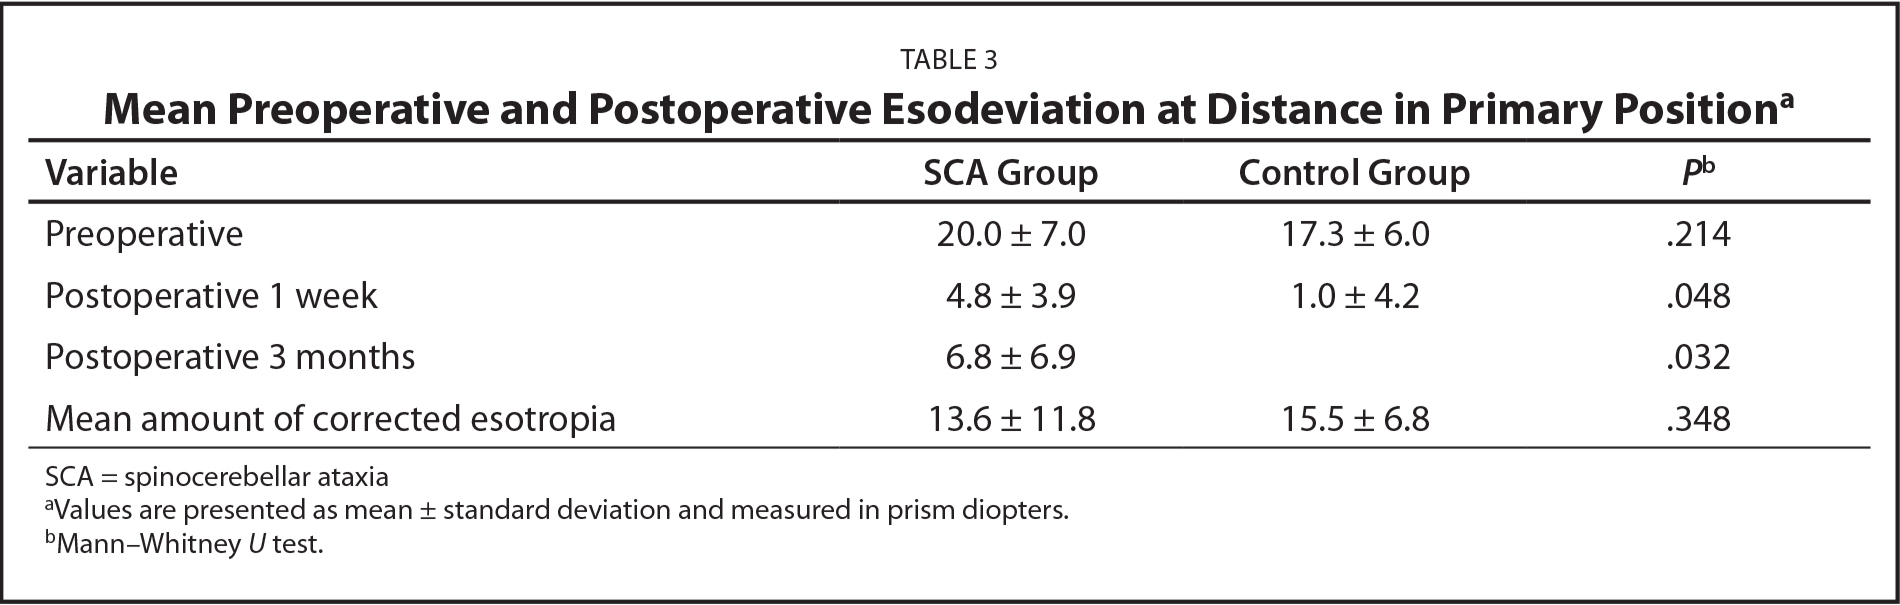 Mean Preoperative and Postoperative Esodeviation at Distance in Primary Positiona